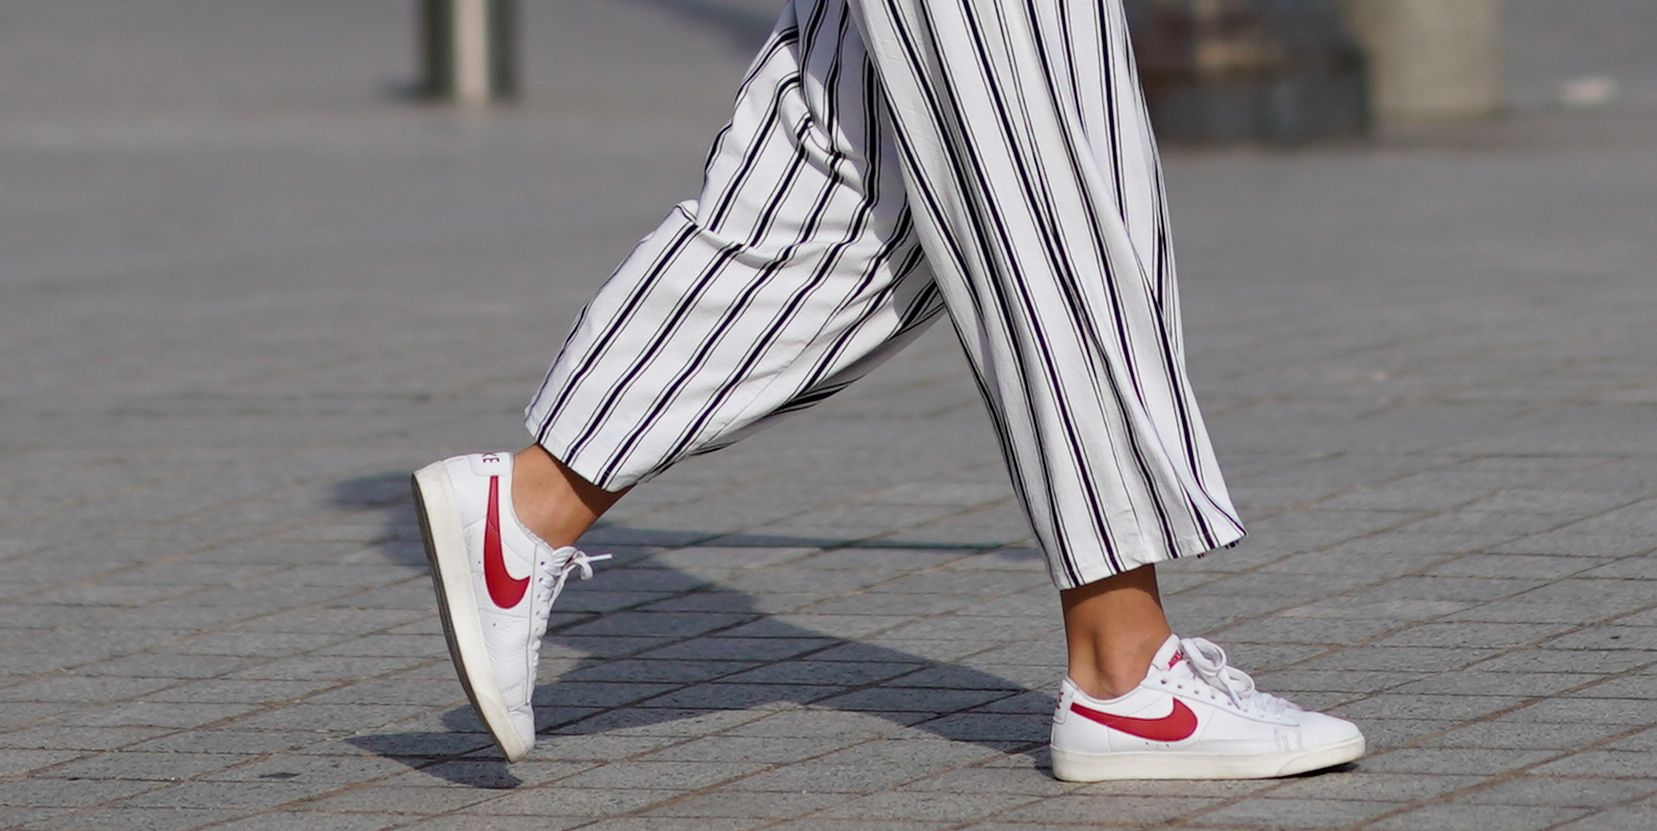 ​The 6 Most Comfortable Sneakers, According to Footwear Experts​